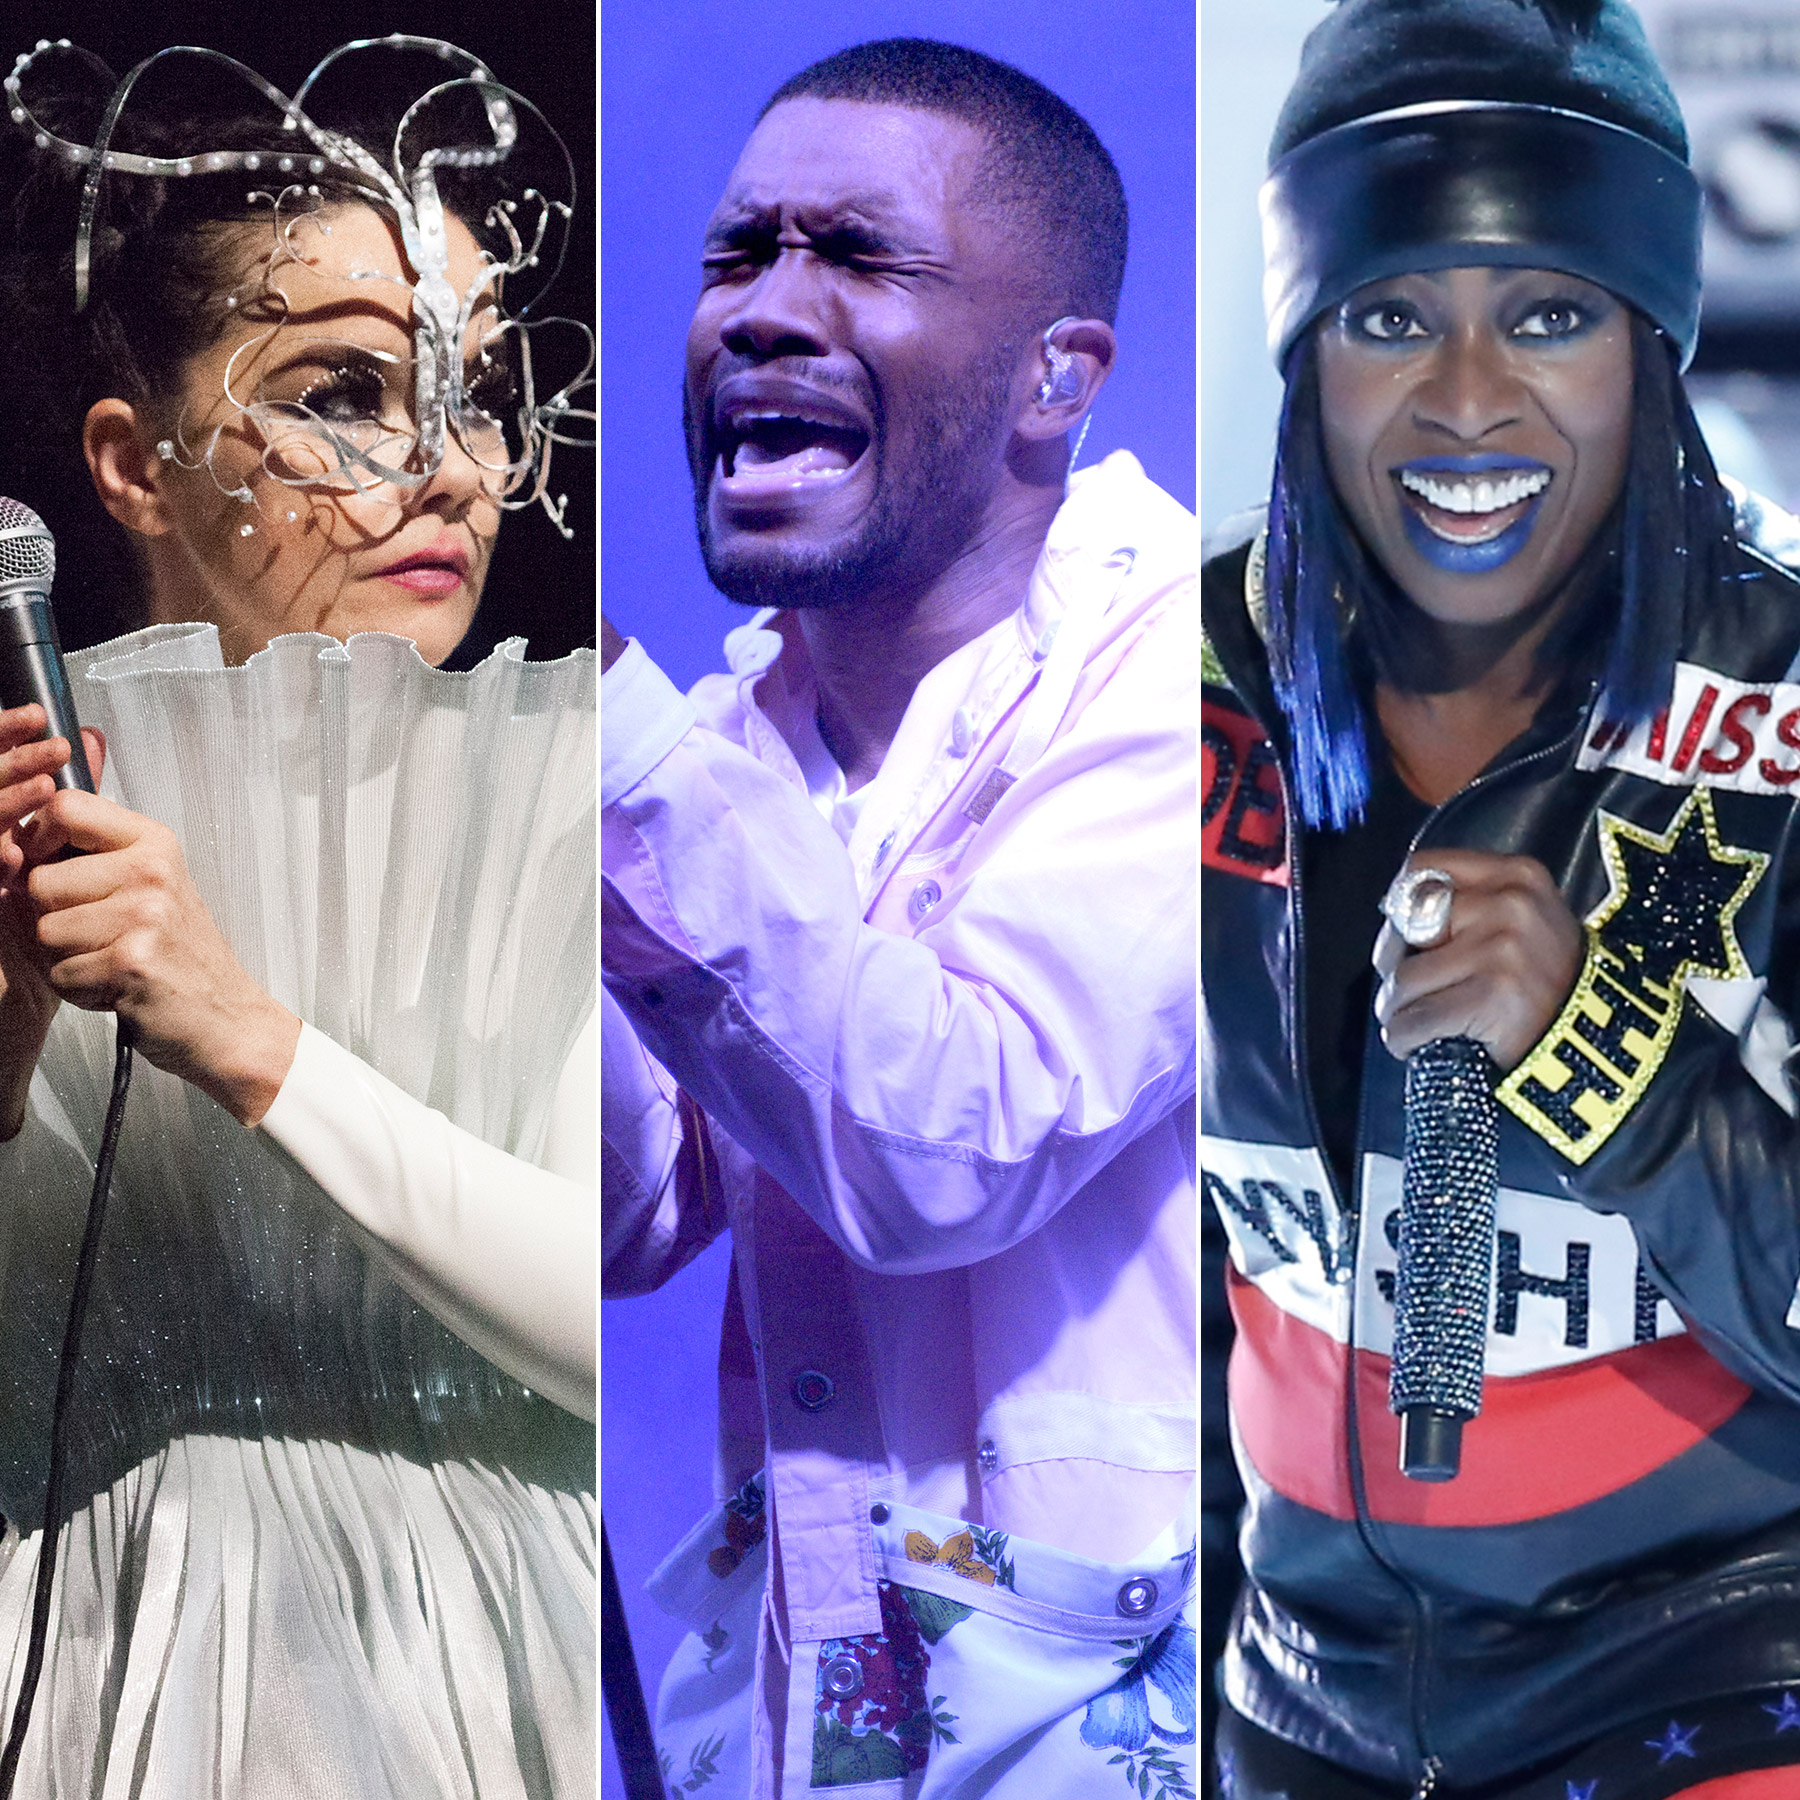 Bjork, Missy Elliott and Frank Ocean